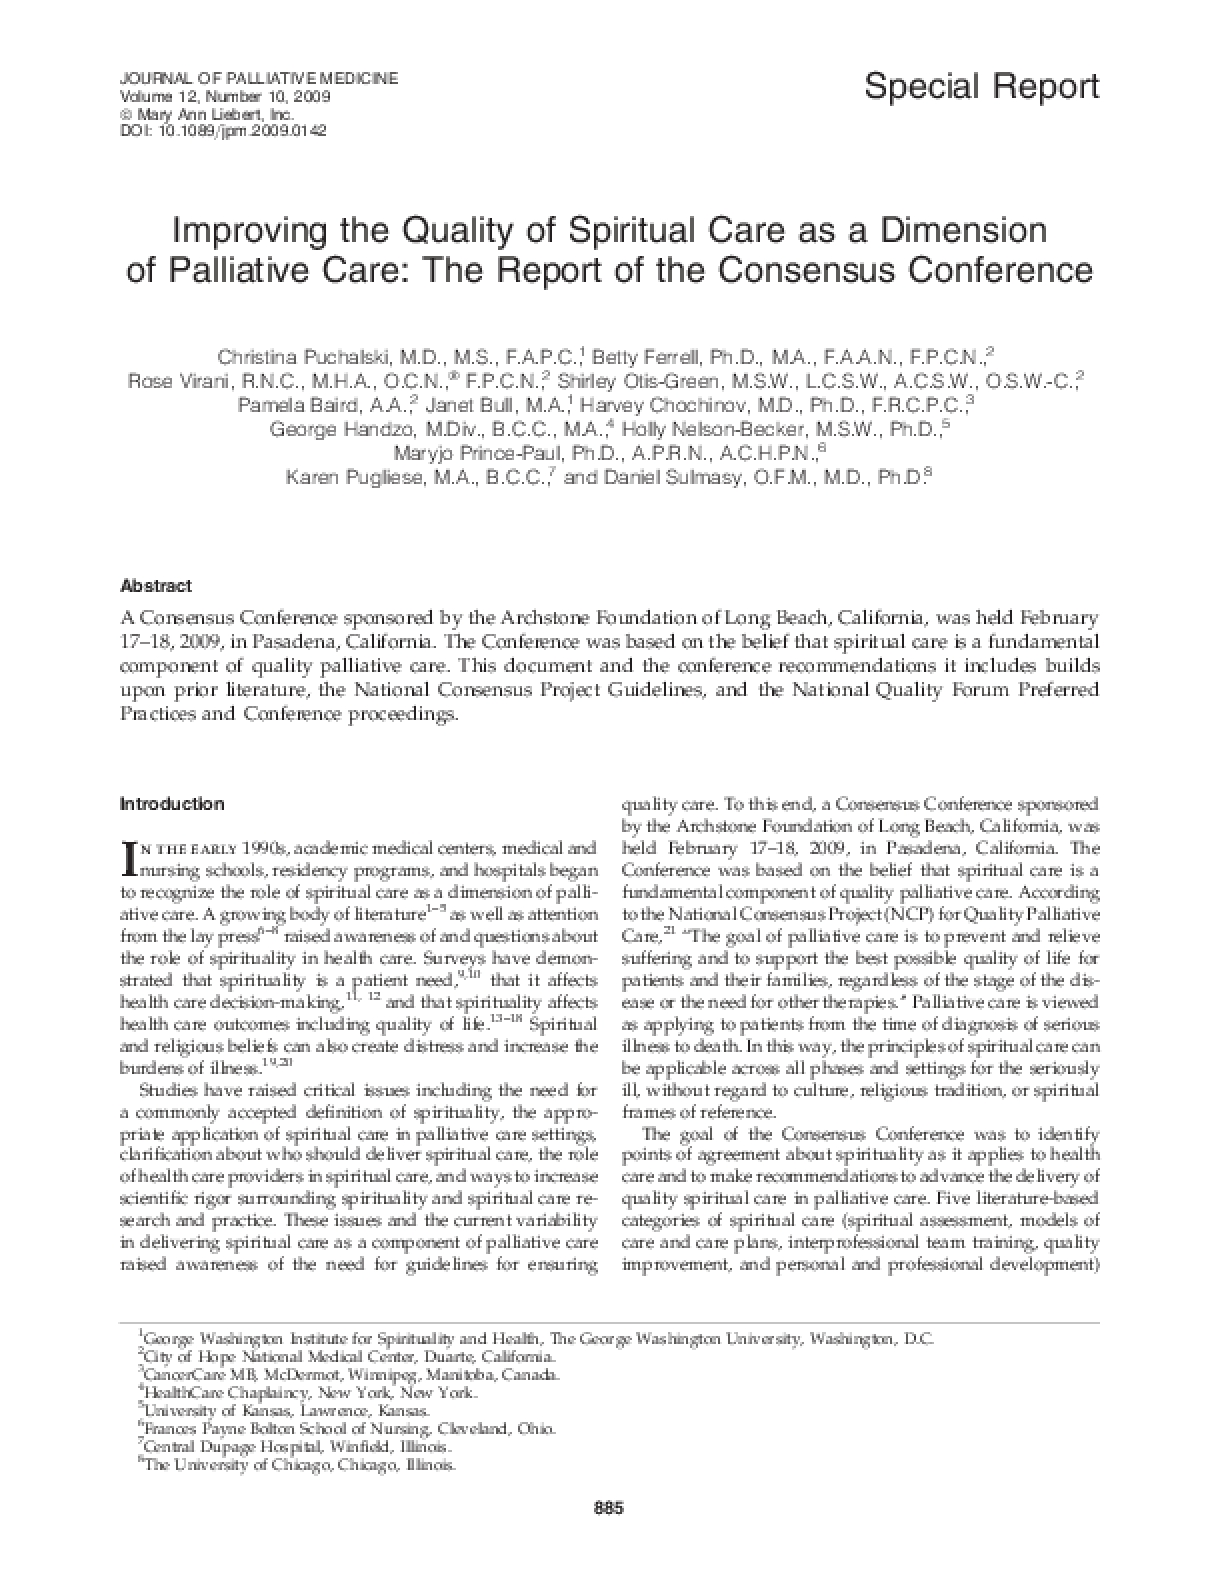 Improving the Quality of Spiritual Care as a Dimension of Palliative Care: The Report of the Consensus Conference